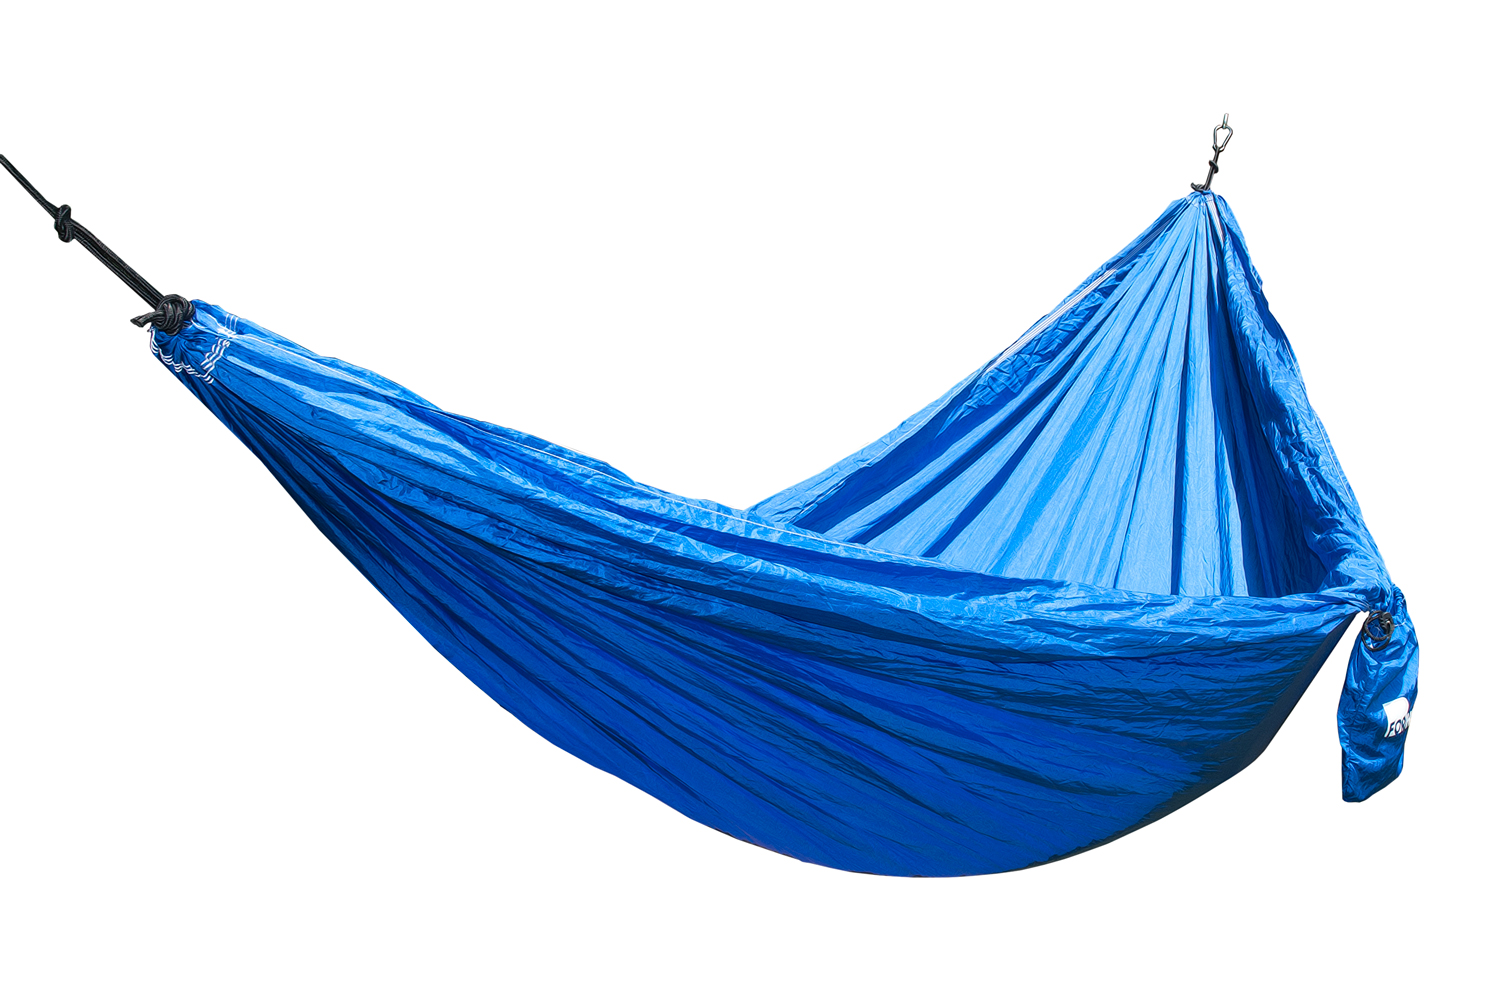 ForHauz Hammock, Ultra-Light Portable Two-Person Parachute Nylon Hanging Bed for Outdoors, Travel, Camping, Backpacking,... by ForHauz